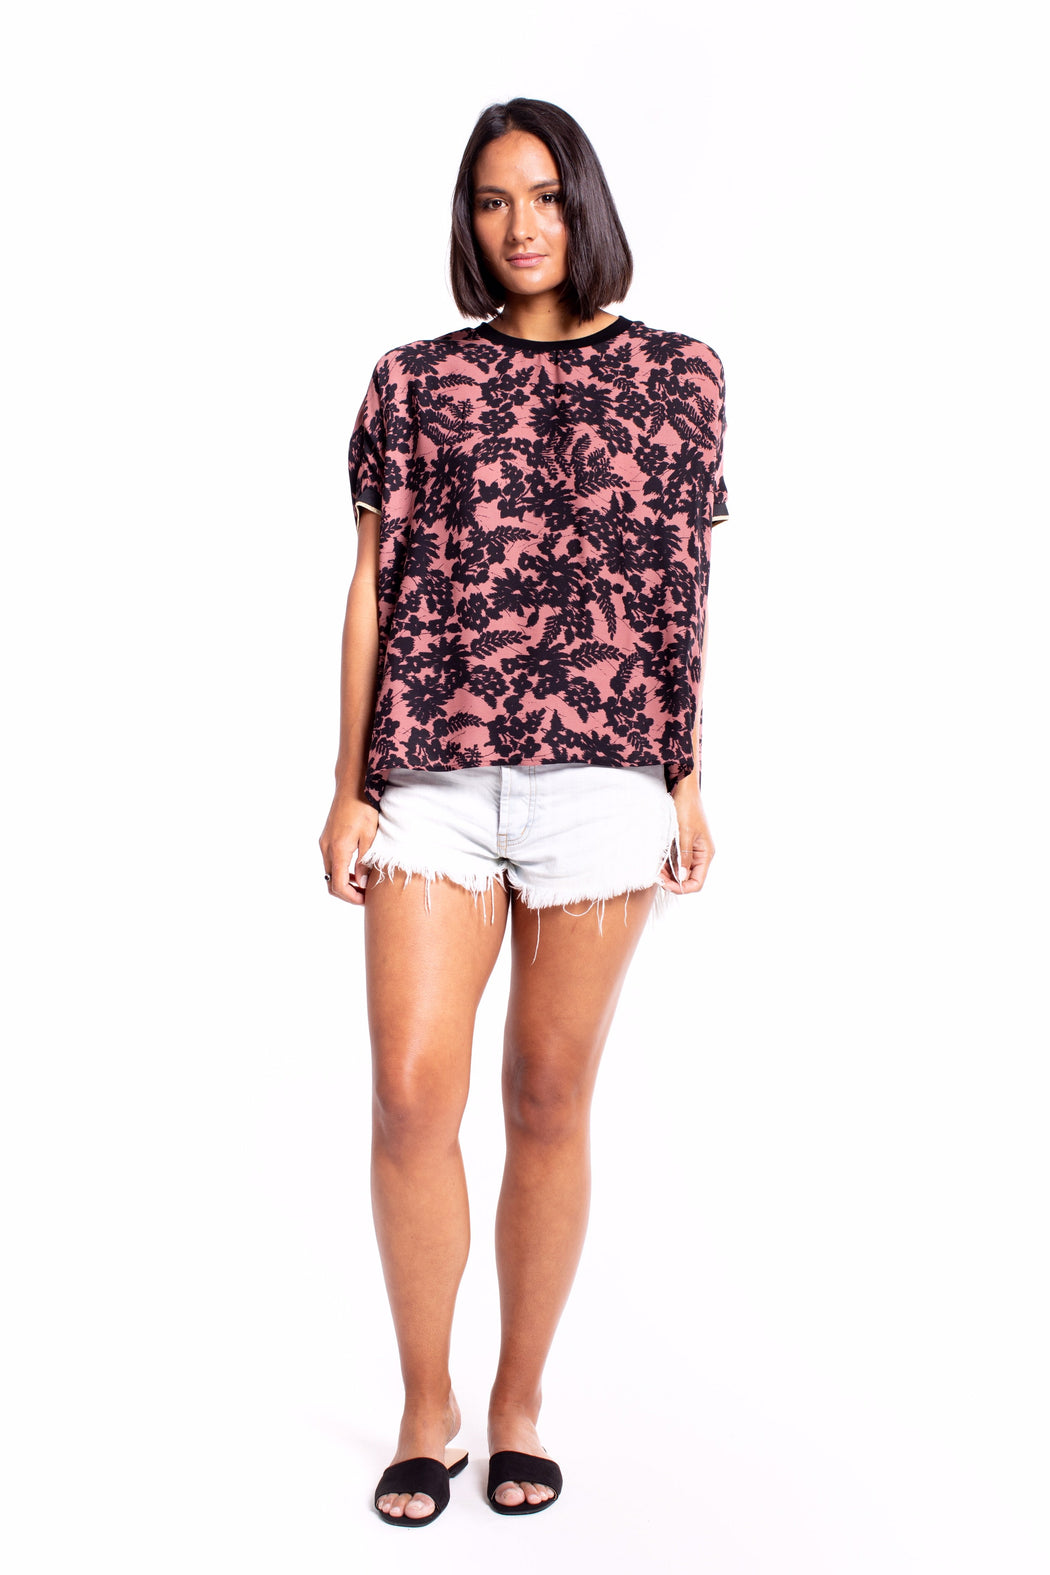 Et Alia Sienna Top - Rose Dawn Print | Shop at Wallace and Gibbs NZ